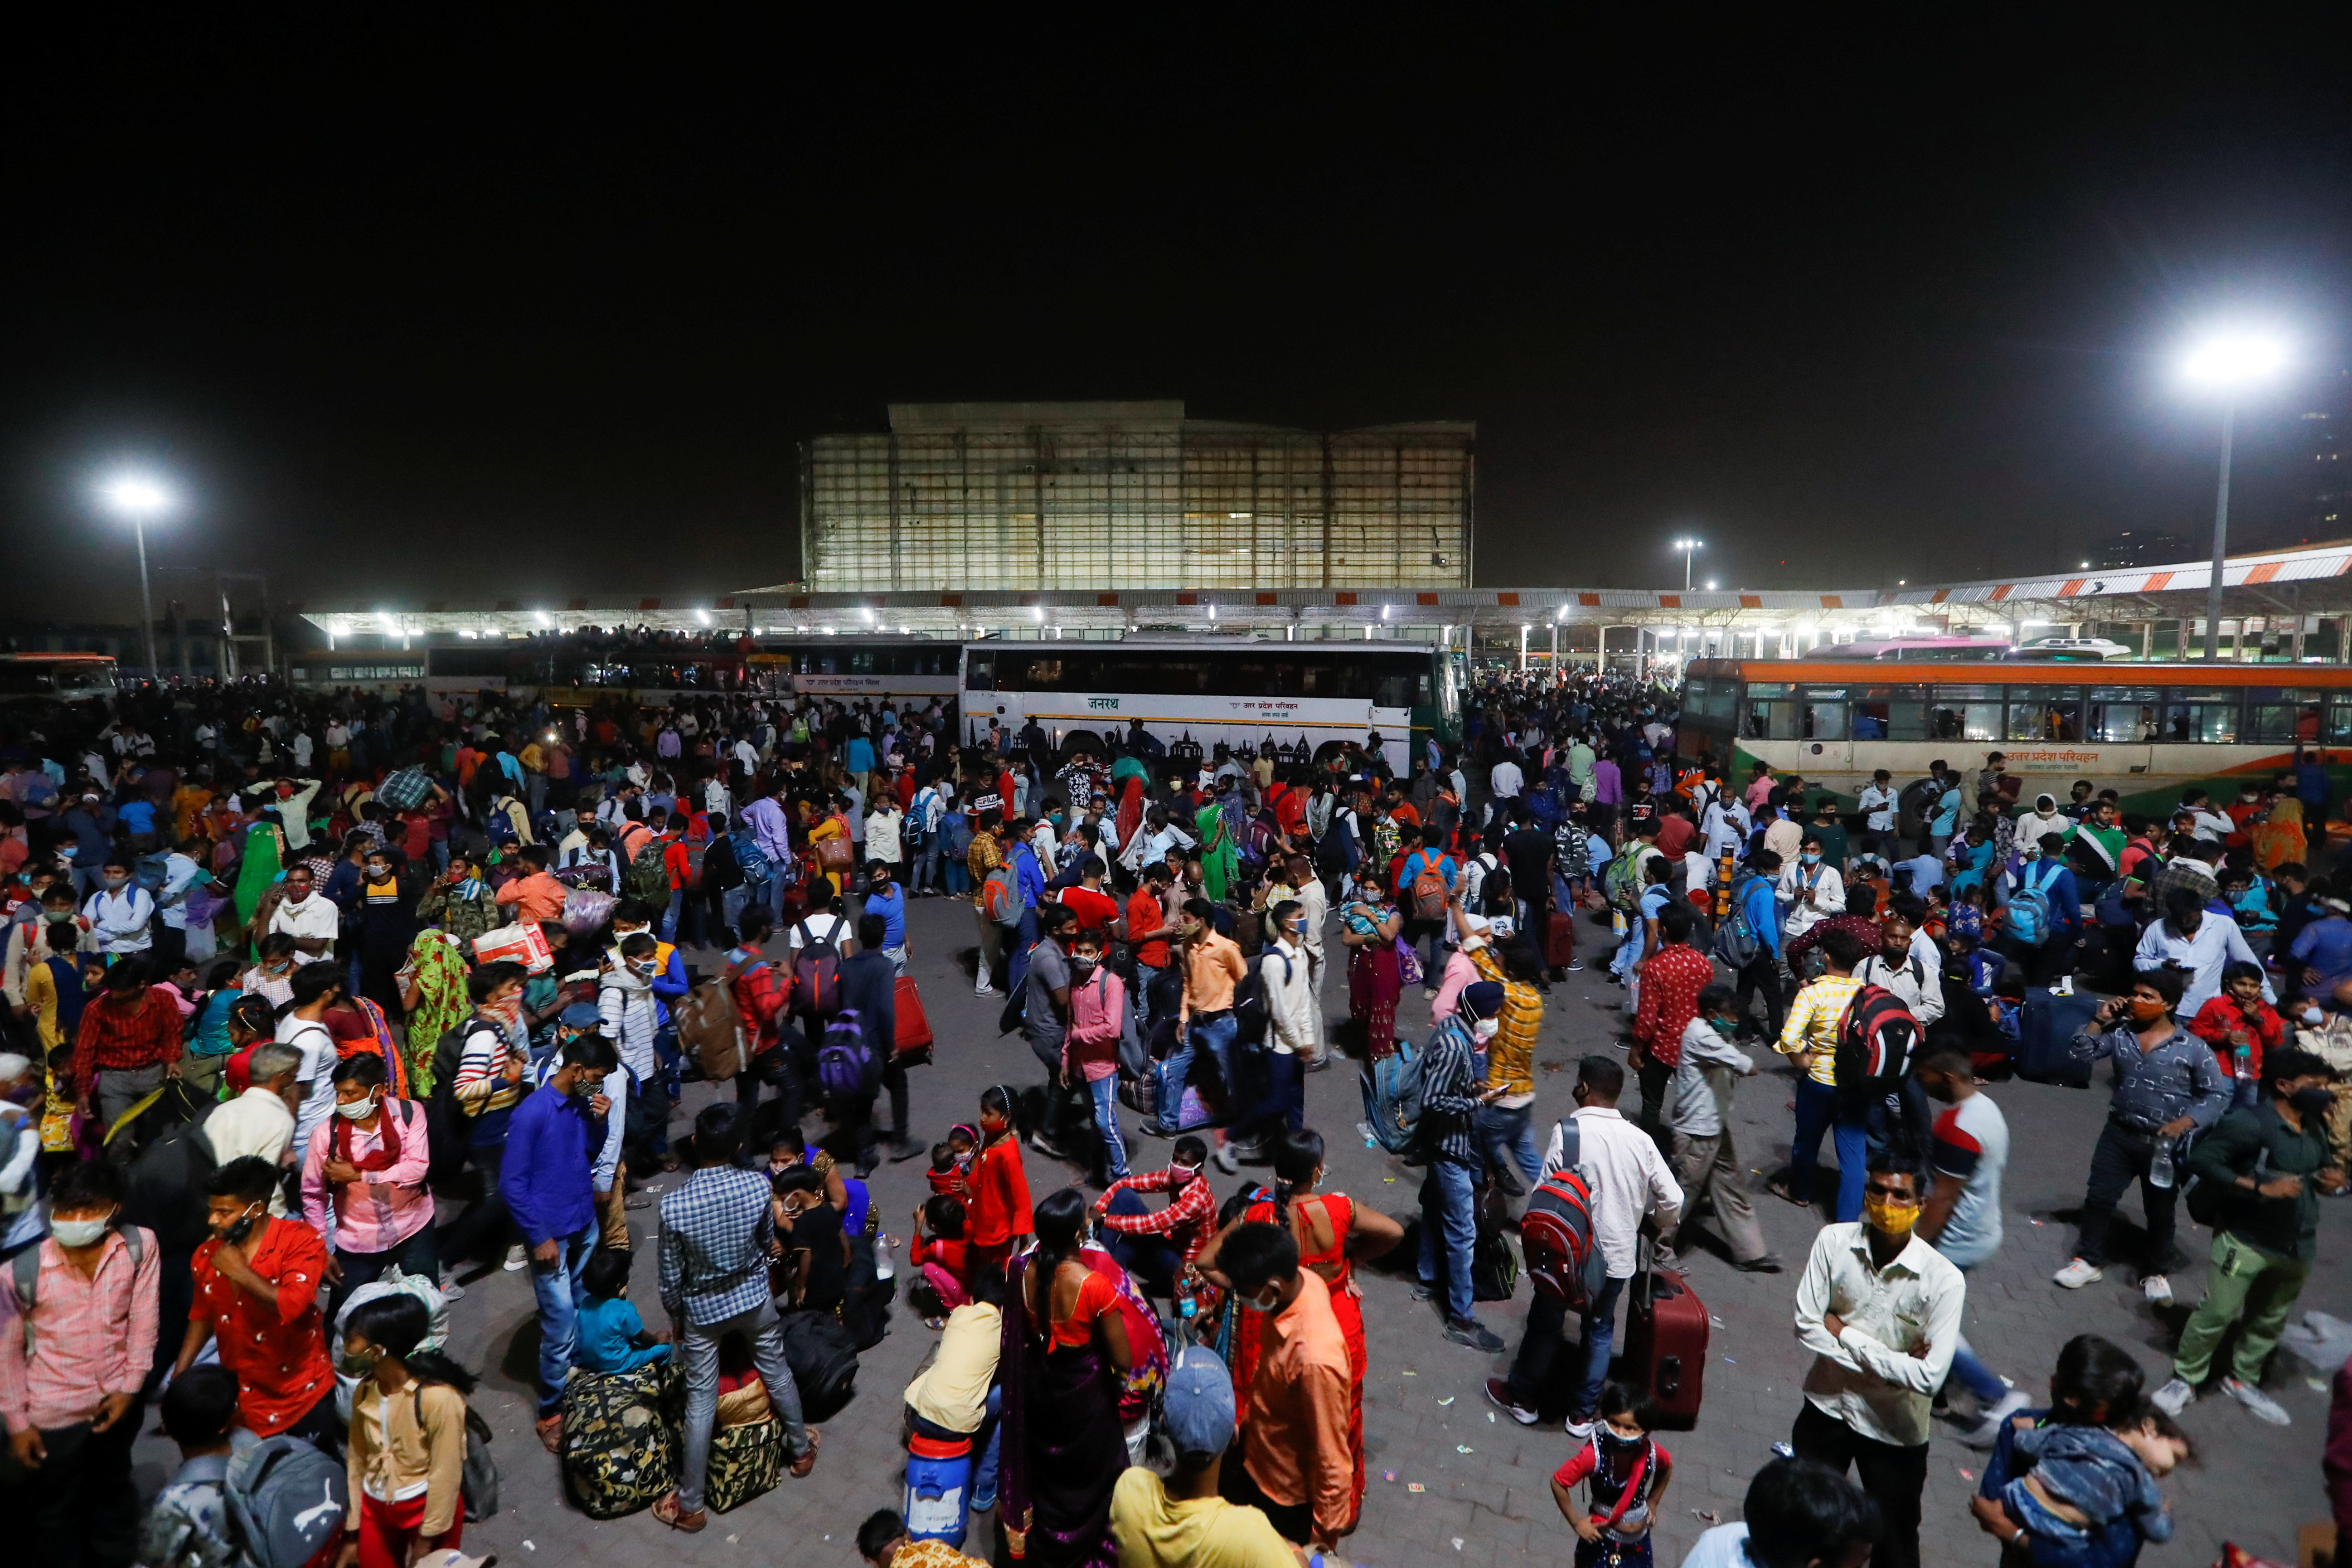 Migrant workers gather at a bus station to board buses to return to their villages after Delhi government ordered a six-day lockdown to limit the spread of the coronavirus disease (COVID-19), in Ghaziabad on the outskirts of New Delhi, India, April 19, 2021. REUTERS/Adnan Abidi